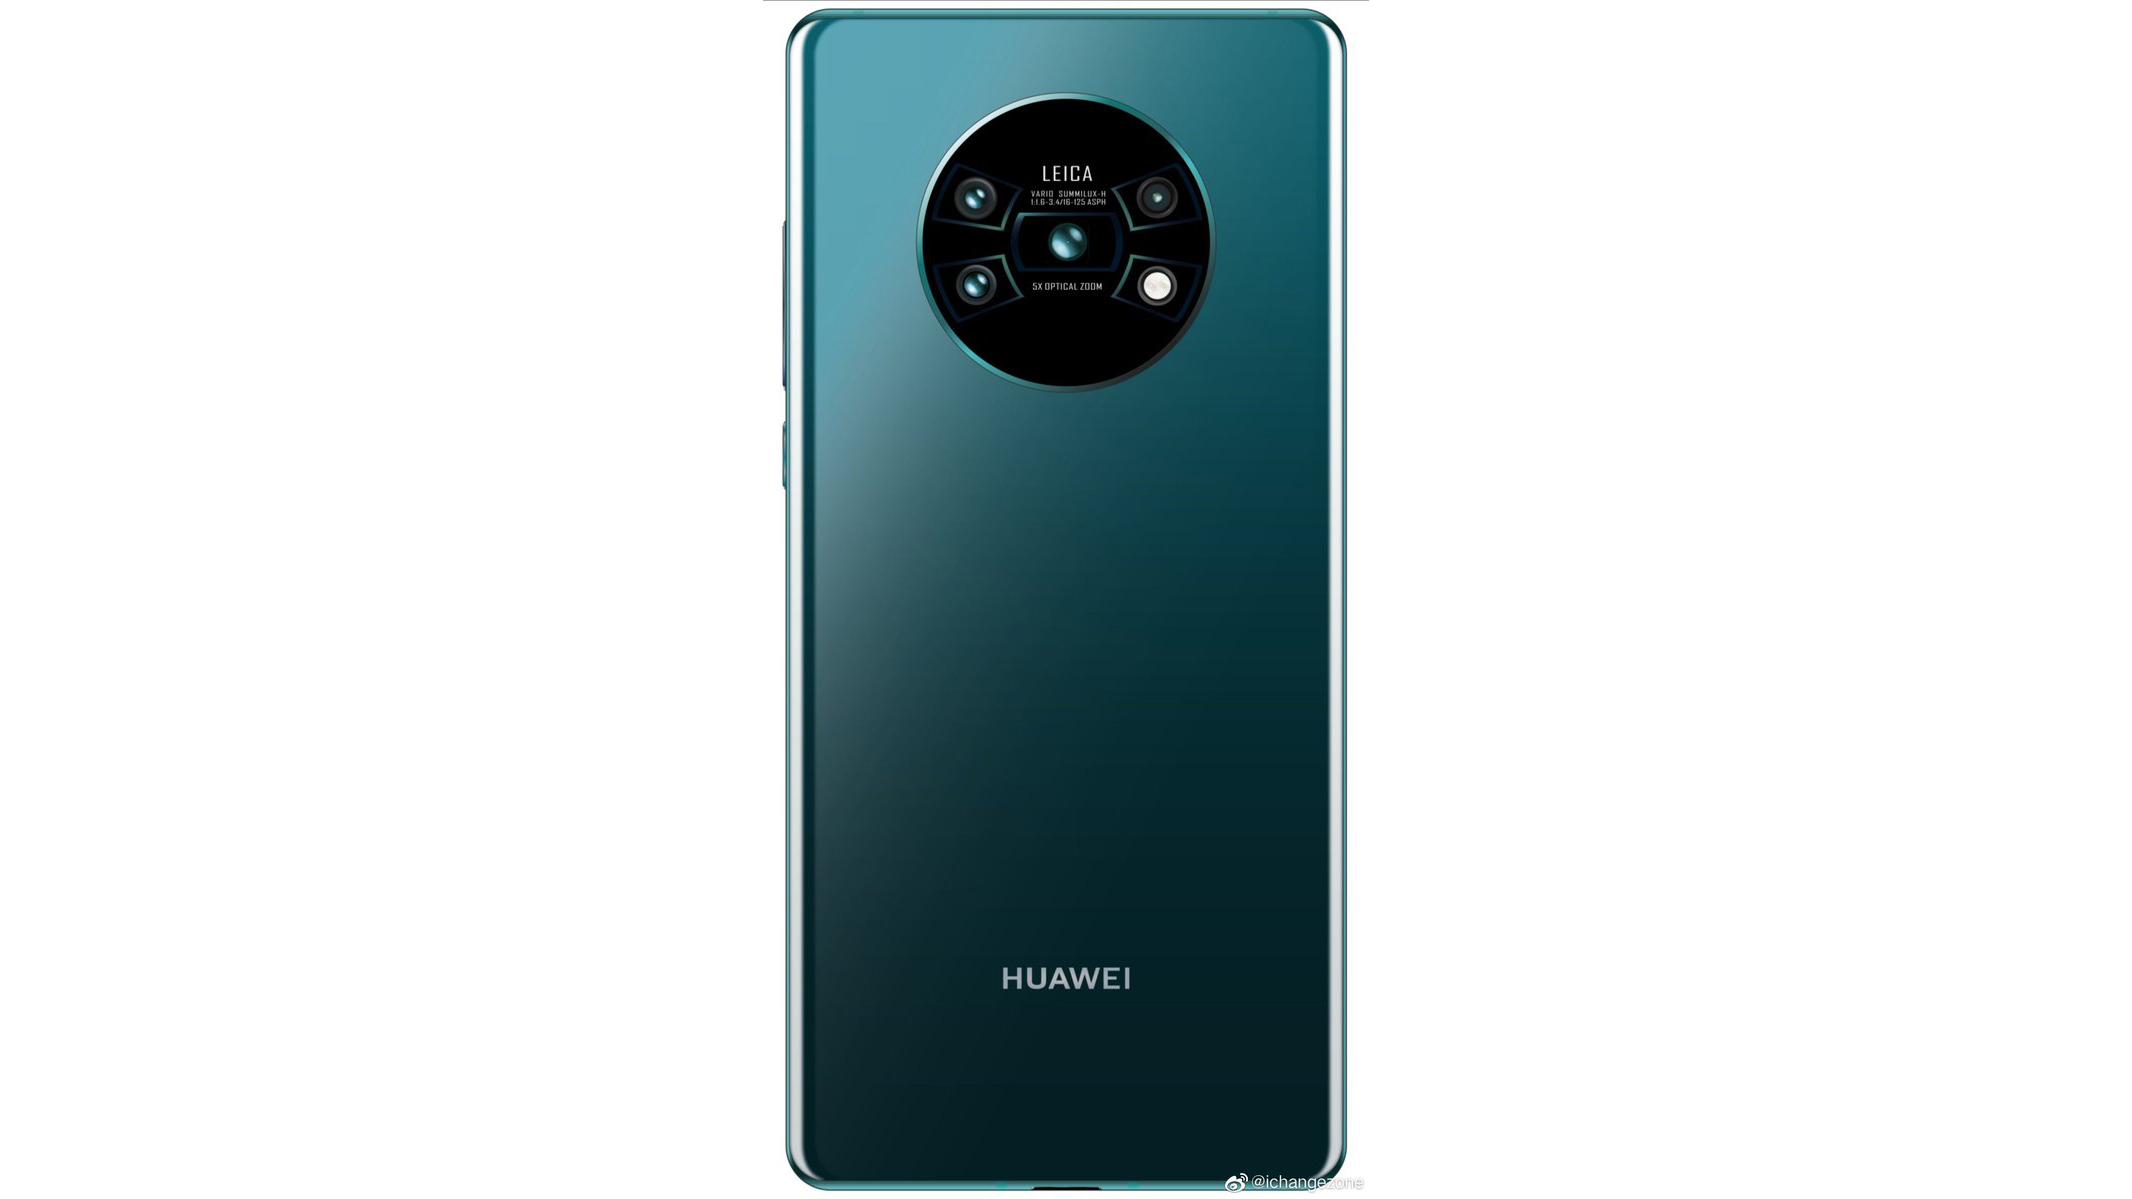 Sforum - Latest technology information page Huawei-Mate-30-Pro-rear-camera-face Revealing Huawei Mate 30's back: 4 rear cameras and LED flash arranged in a cool X